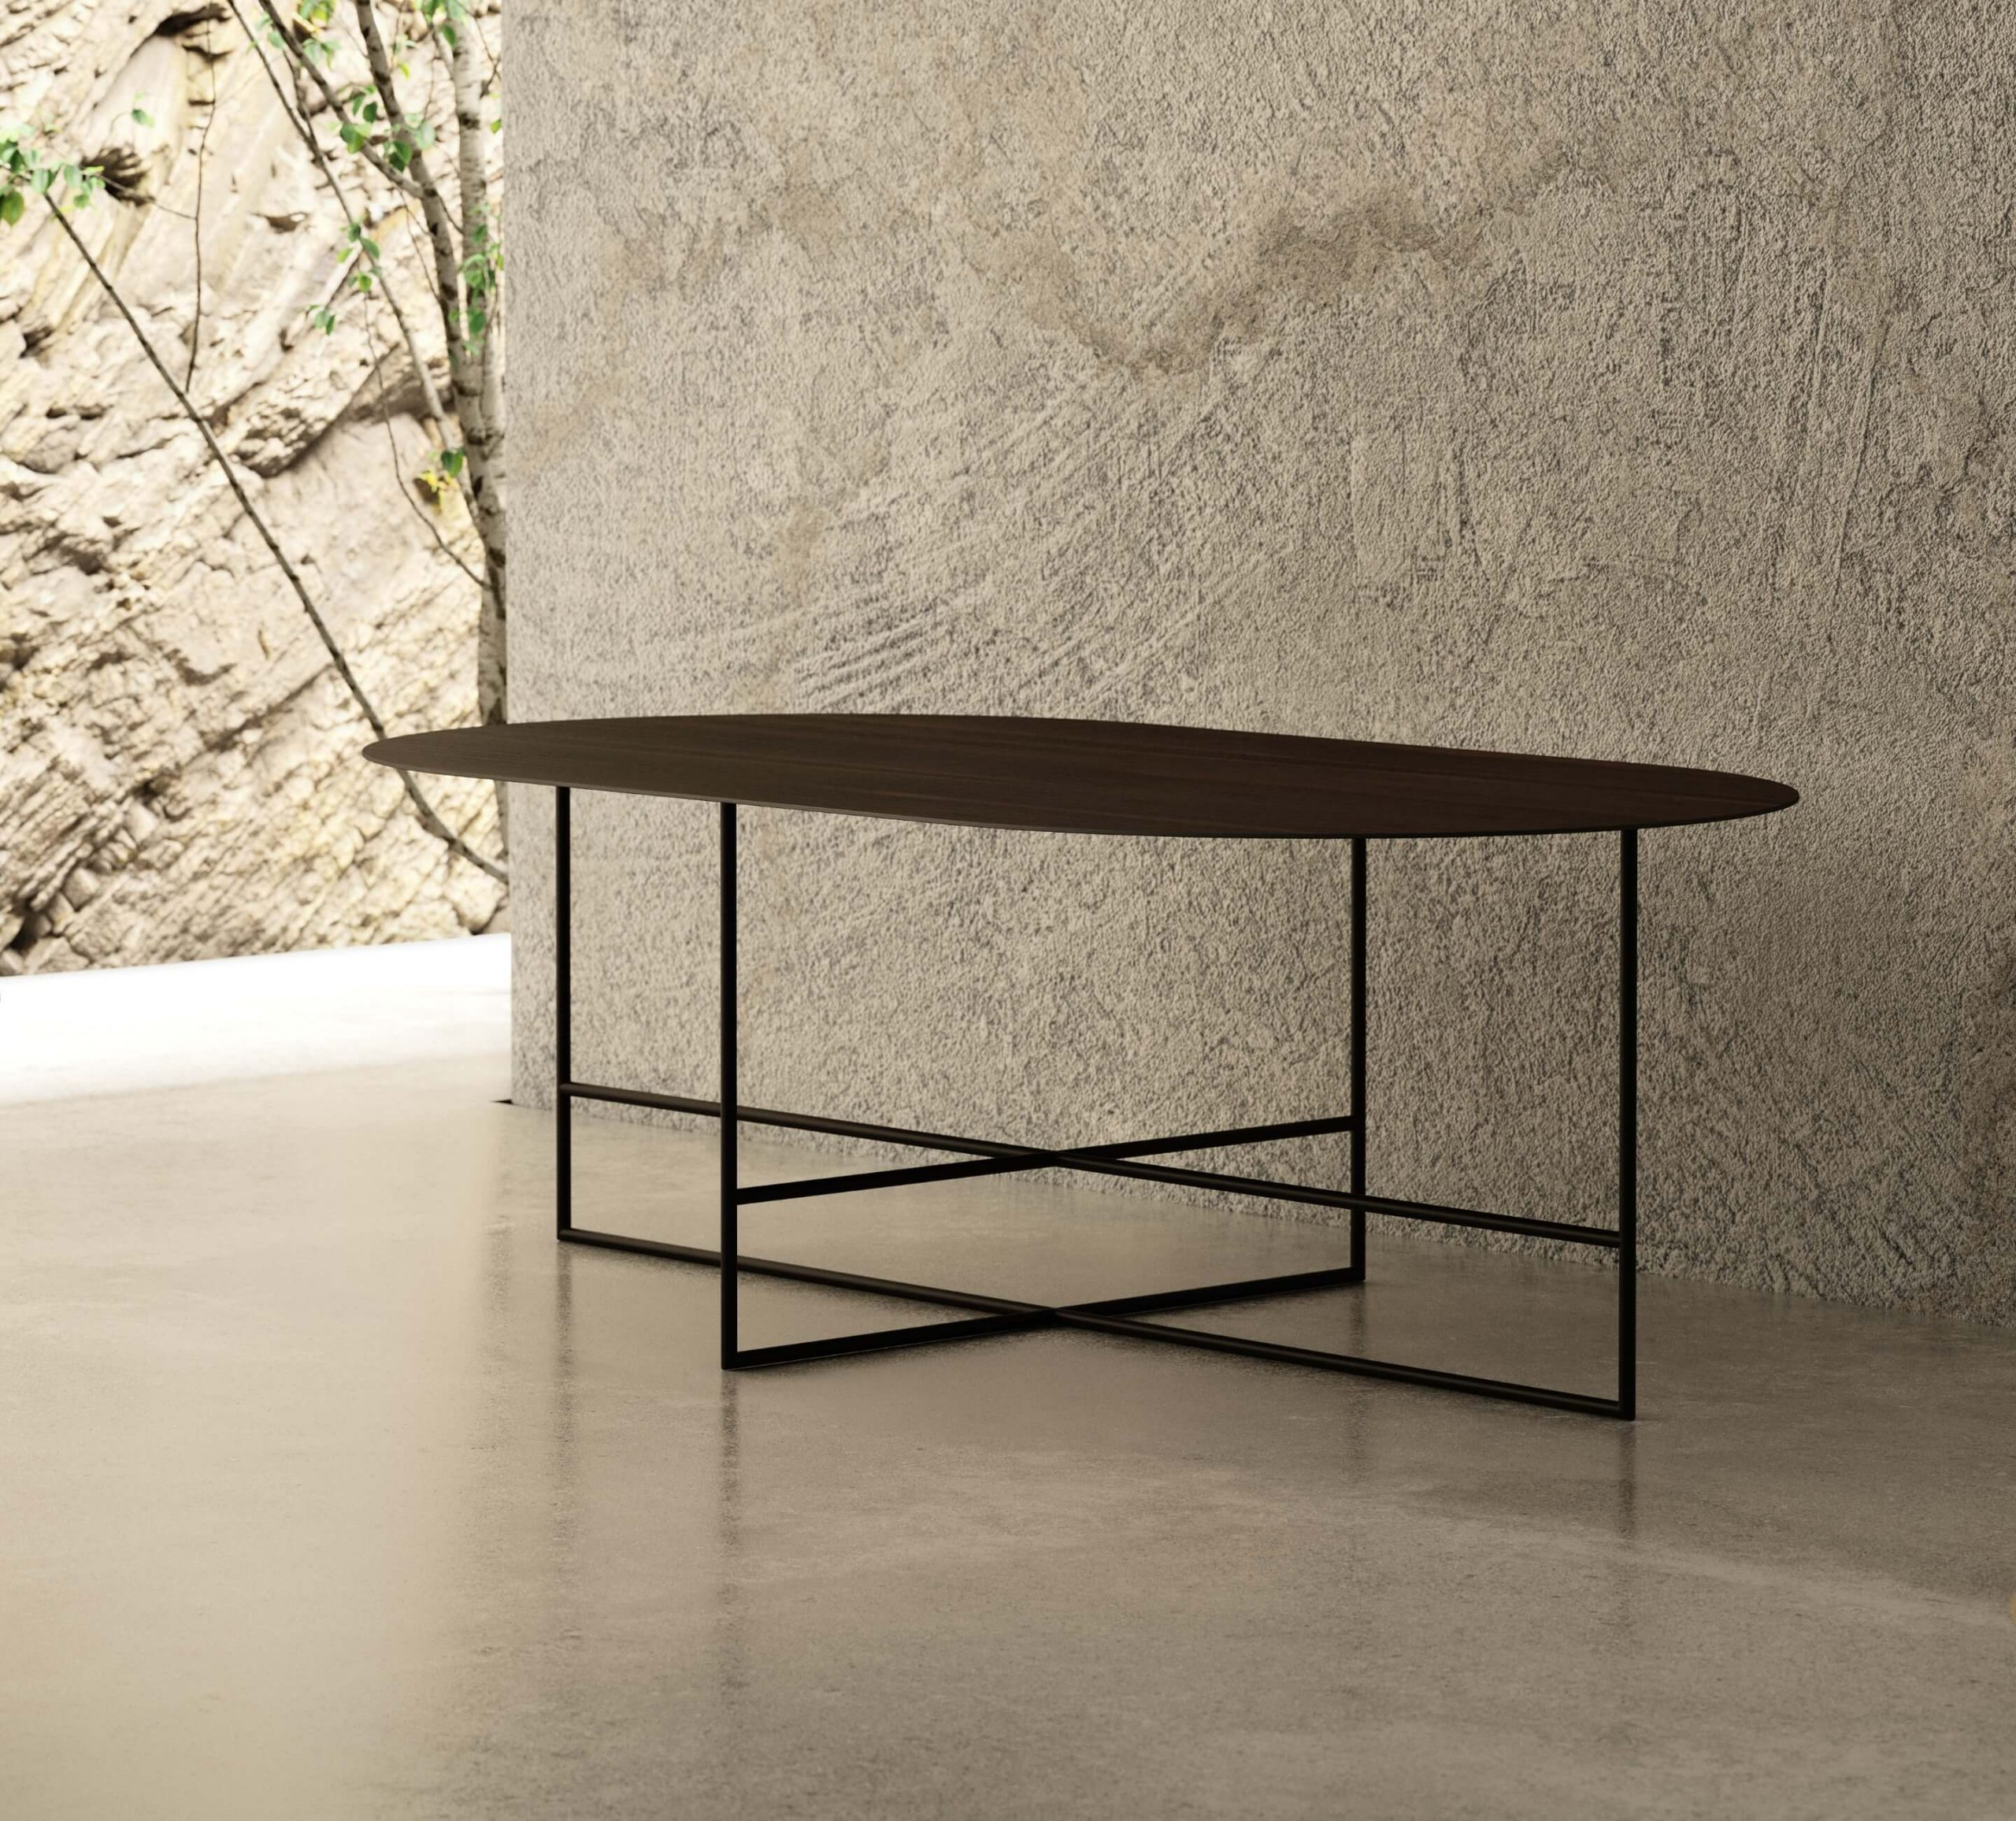 inside-coffee-table-living-room-casegoods-furniture-home-decor-black-base-domkapa